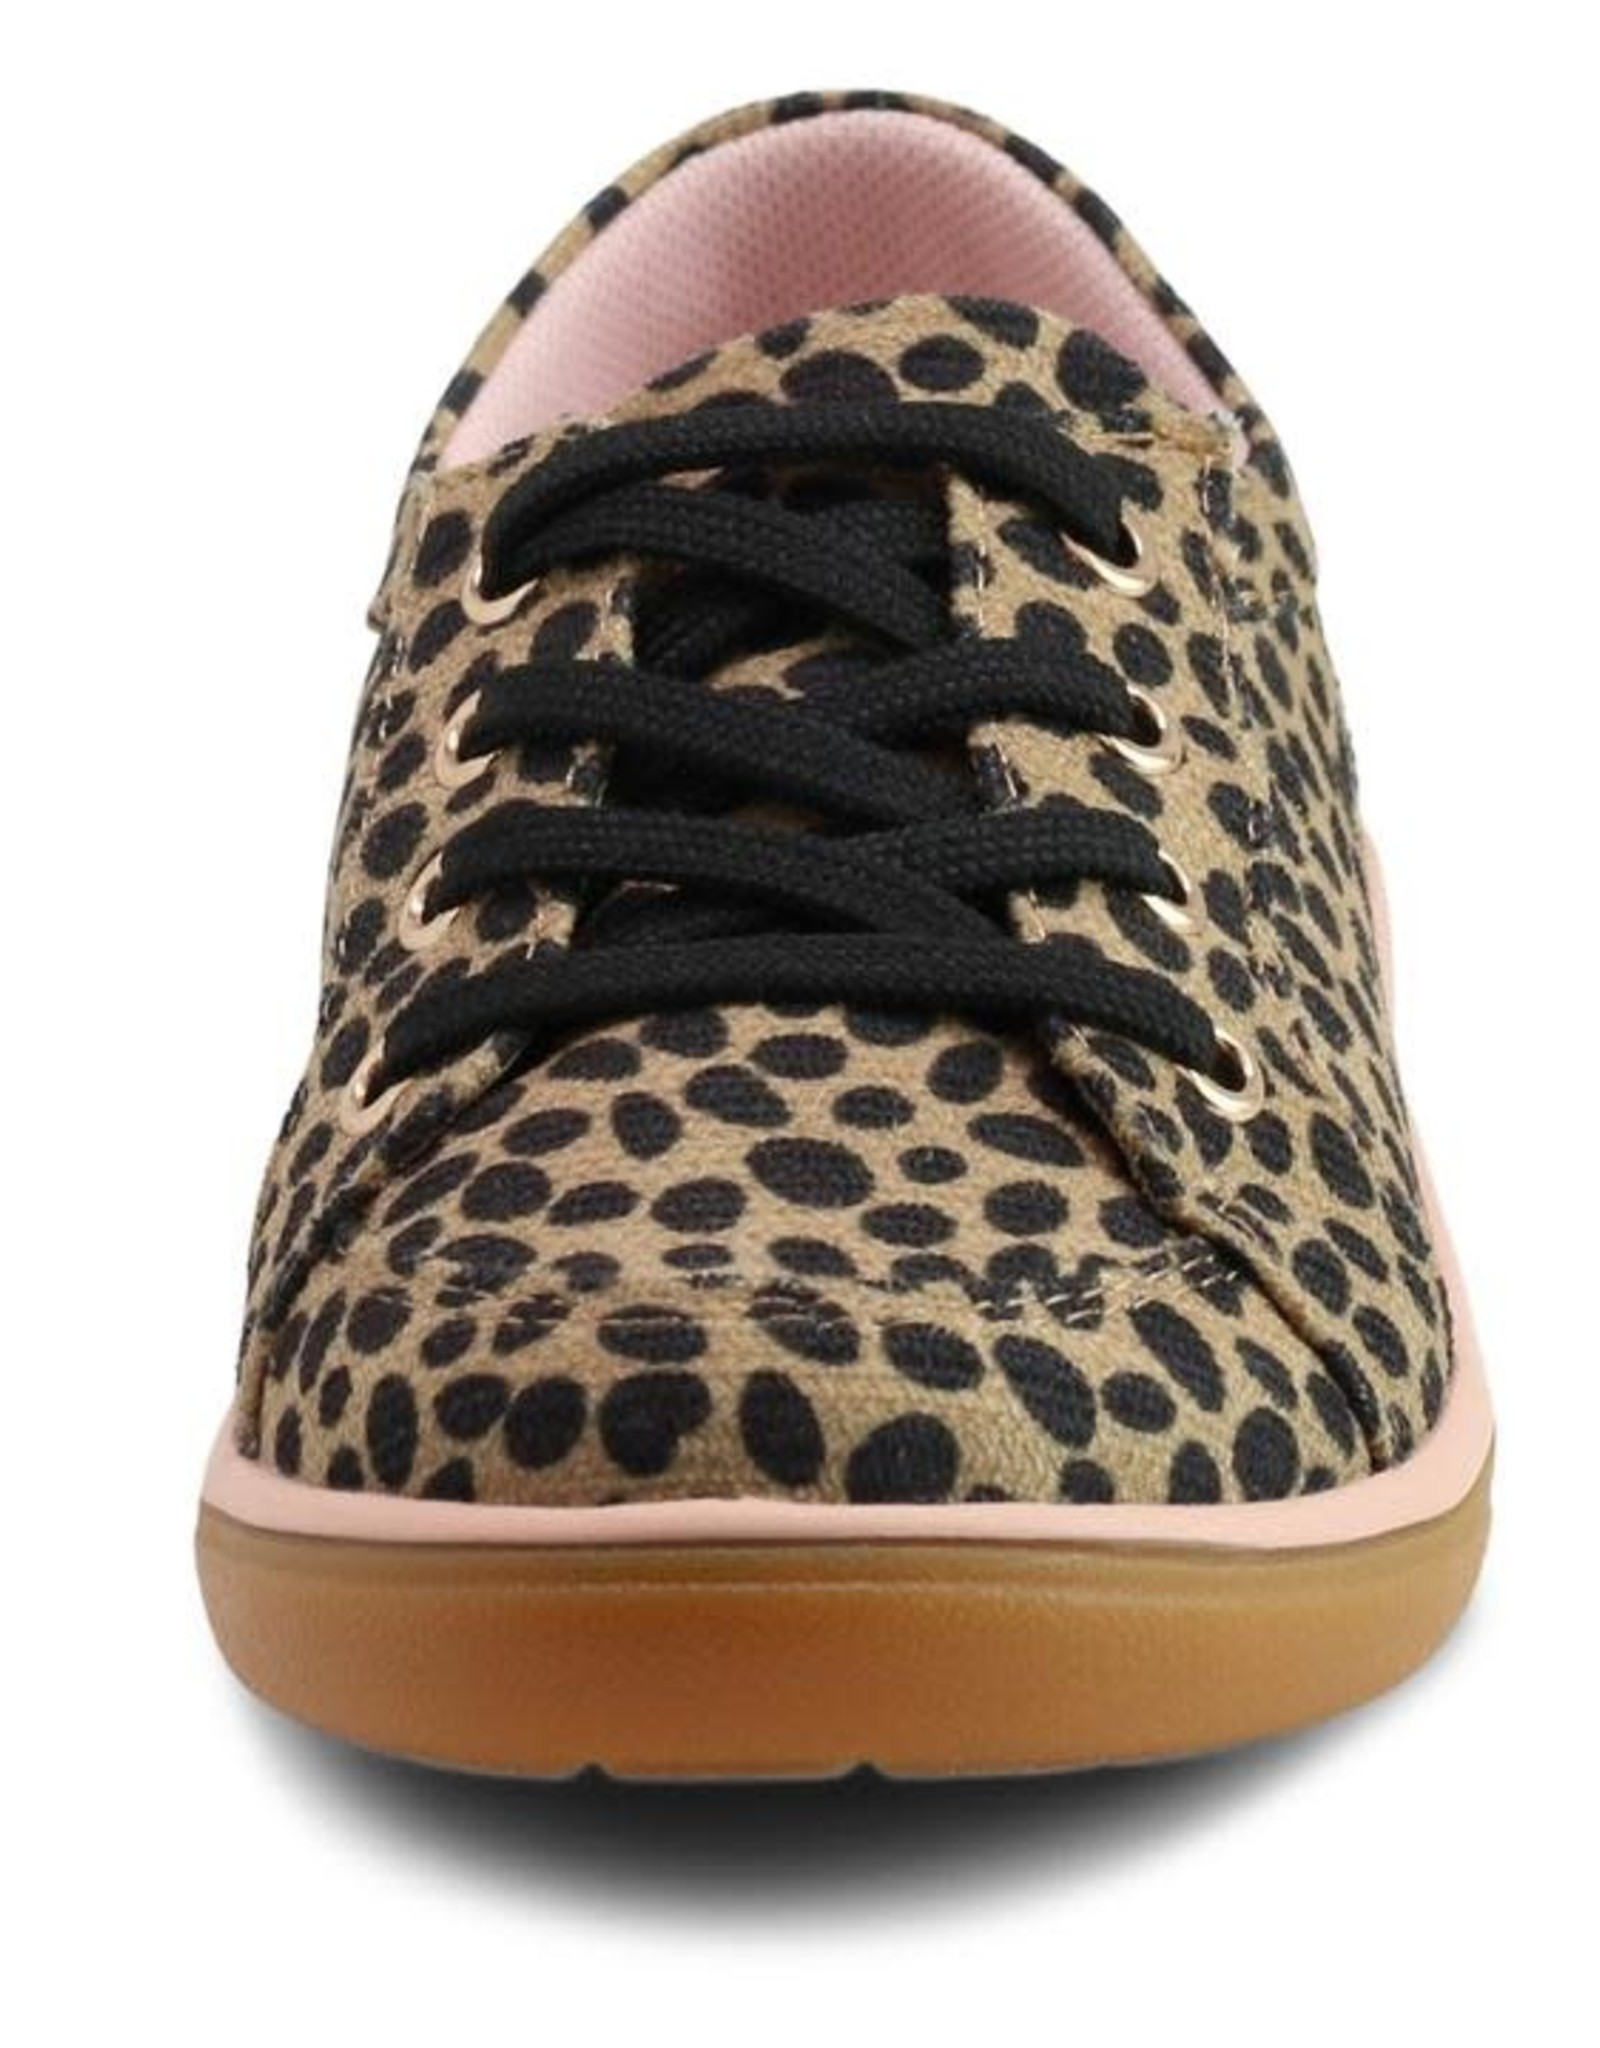 Livie and Luca Reeve Sneaker in Spotted Caramel